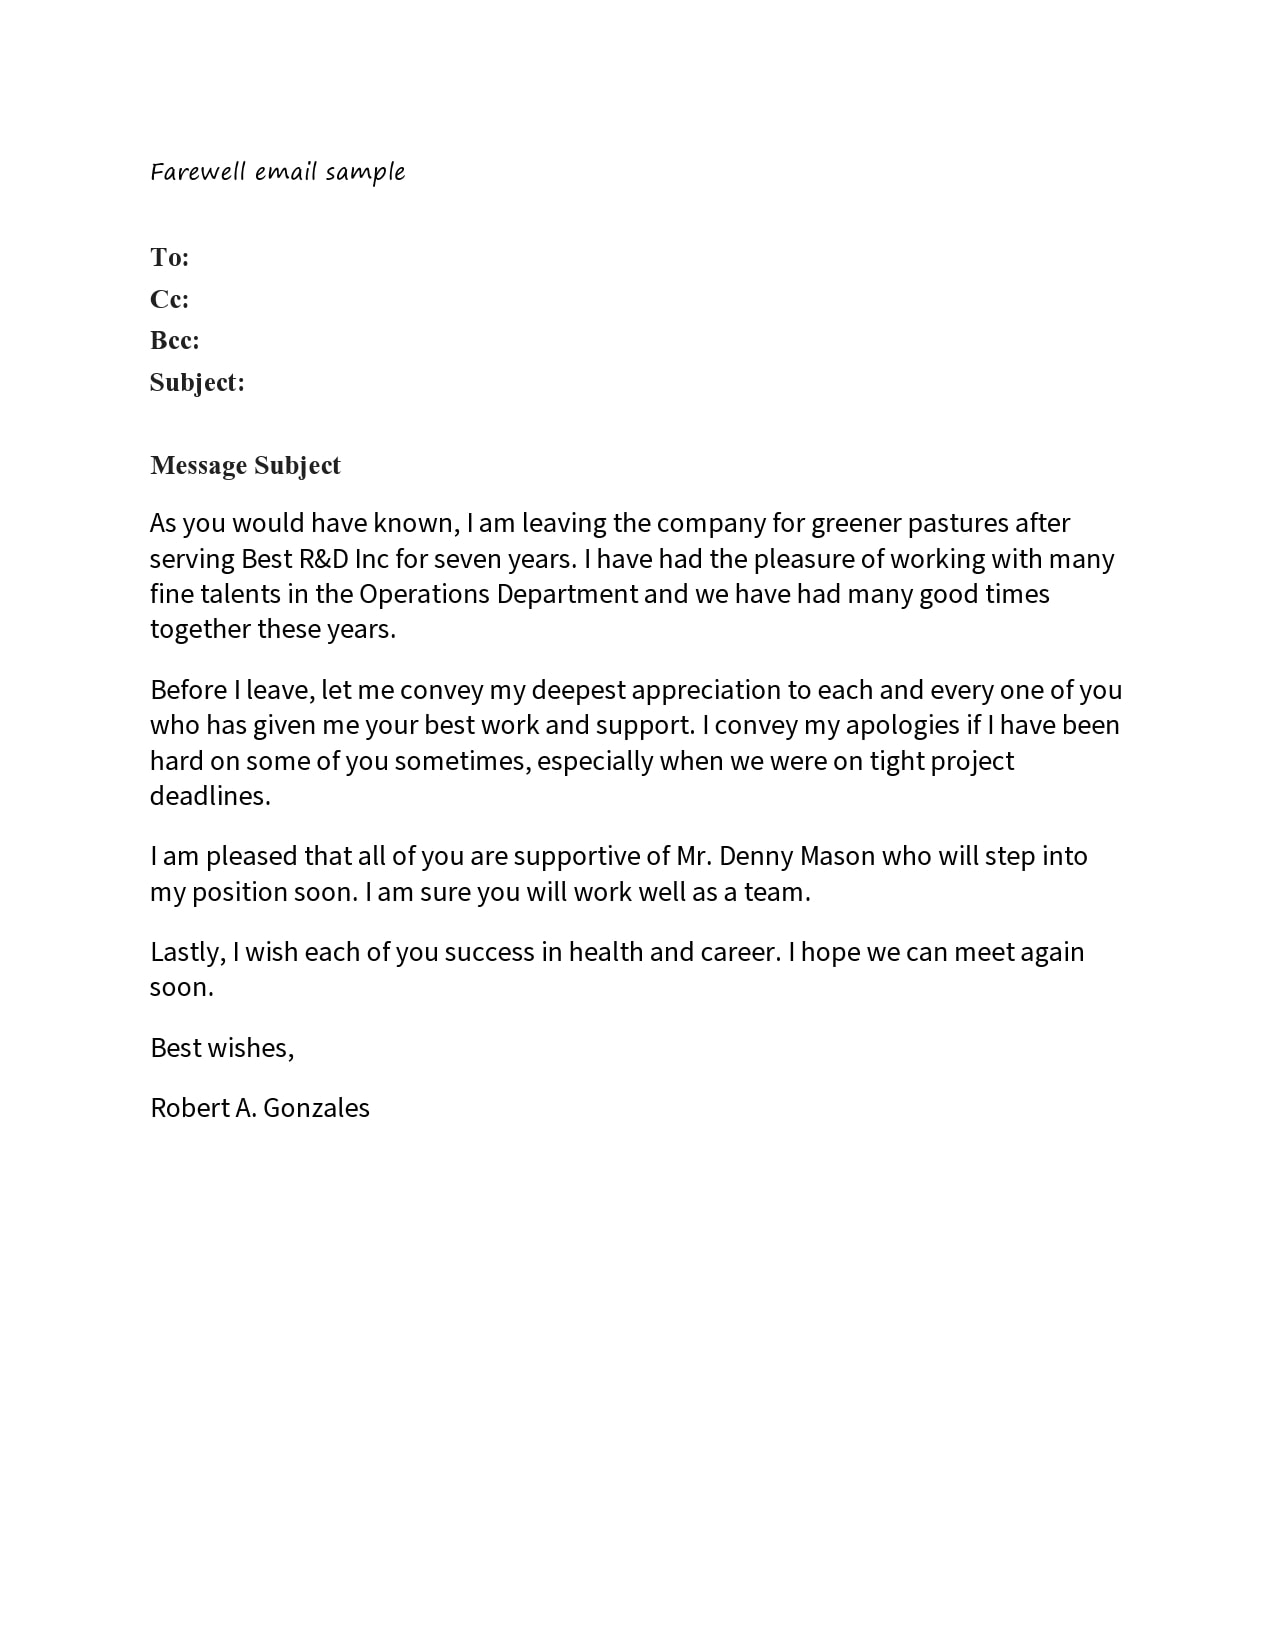 How to Write the Best Farewell Email to Co-Workers and